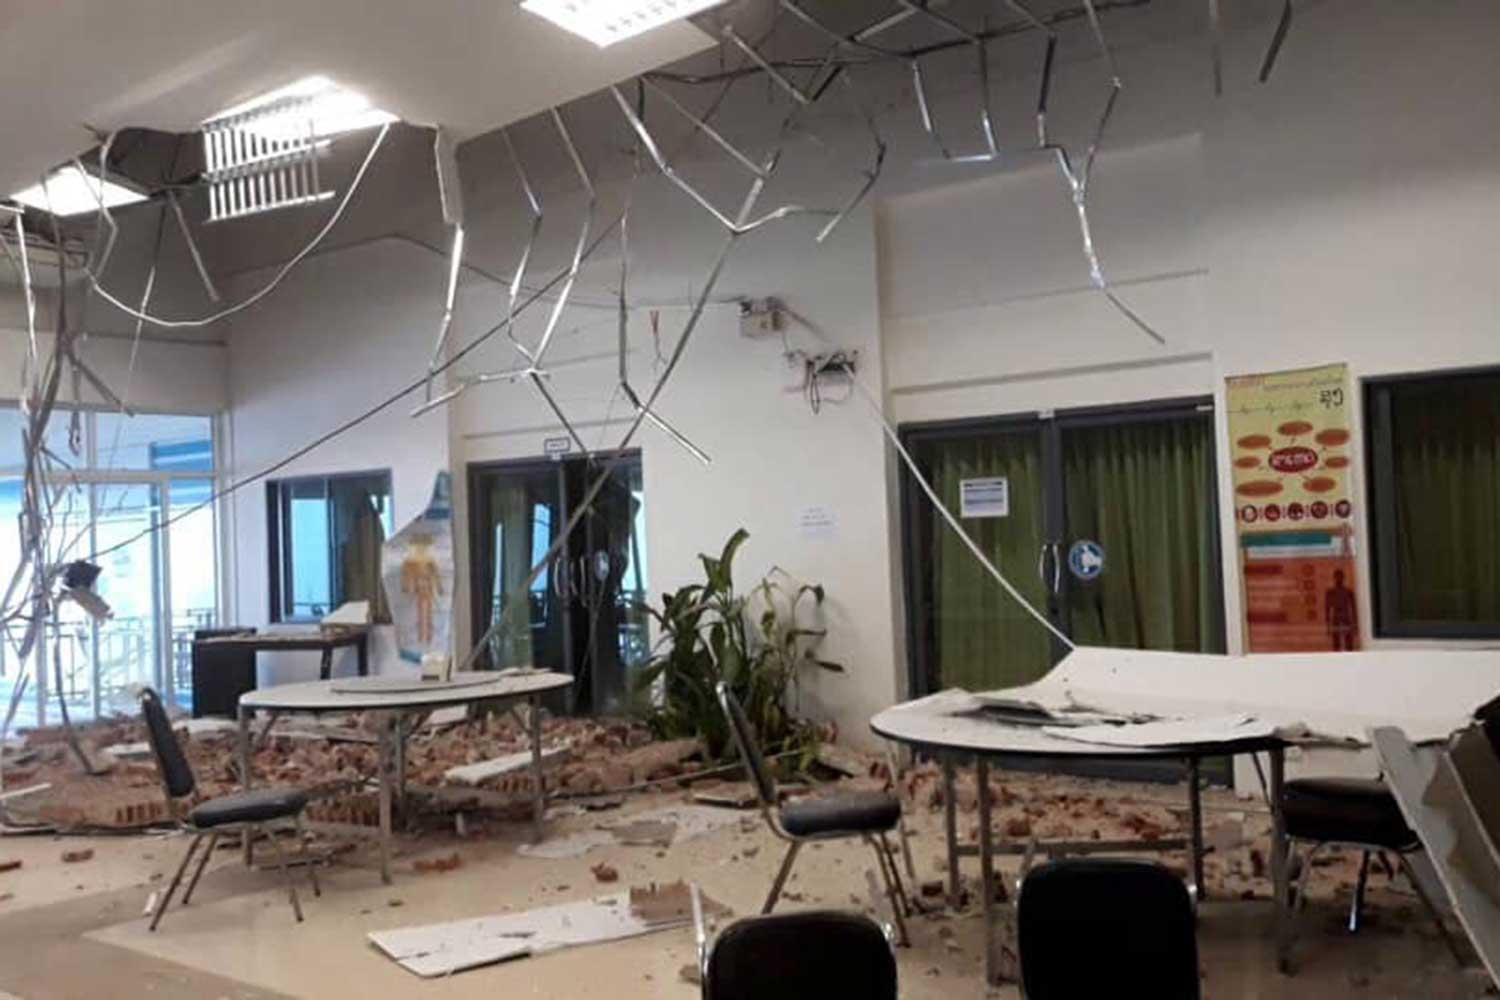 Part of the roof and ceiling collapsed at the Border Patrol Police 100th year schoool in Bo Klua district of Nan province during the earthquake on Thursday mornning. The school has been temporary closed. (Photo by Rarinthorn Petcharoen)